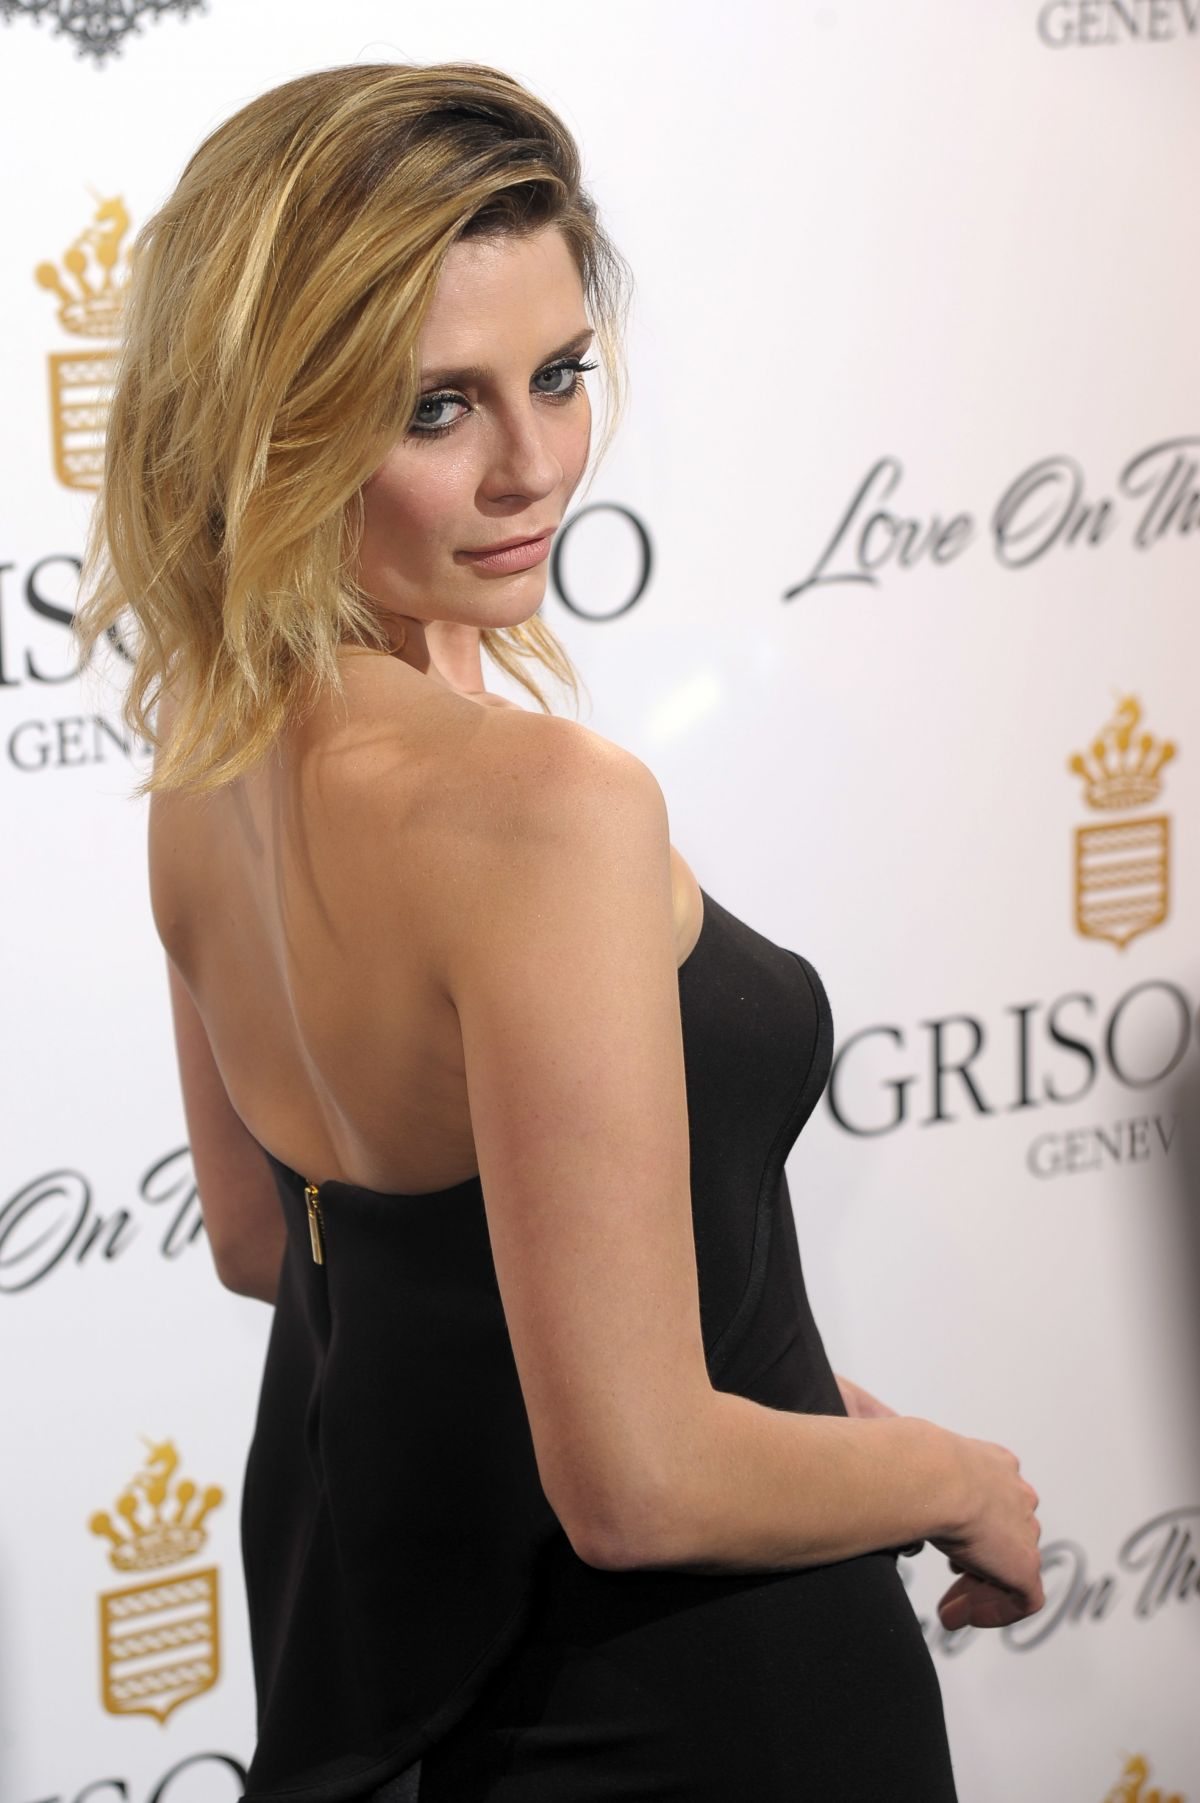 MISCHA BARTON at De Grisogono Party at Cannes Film ...